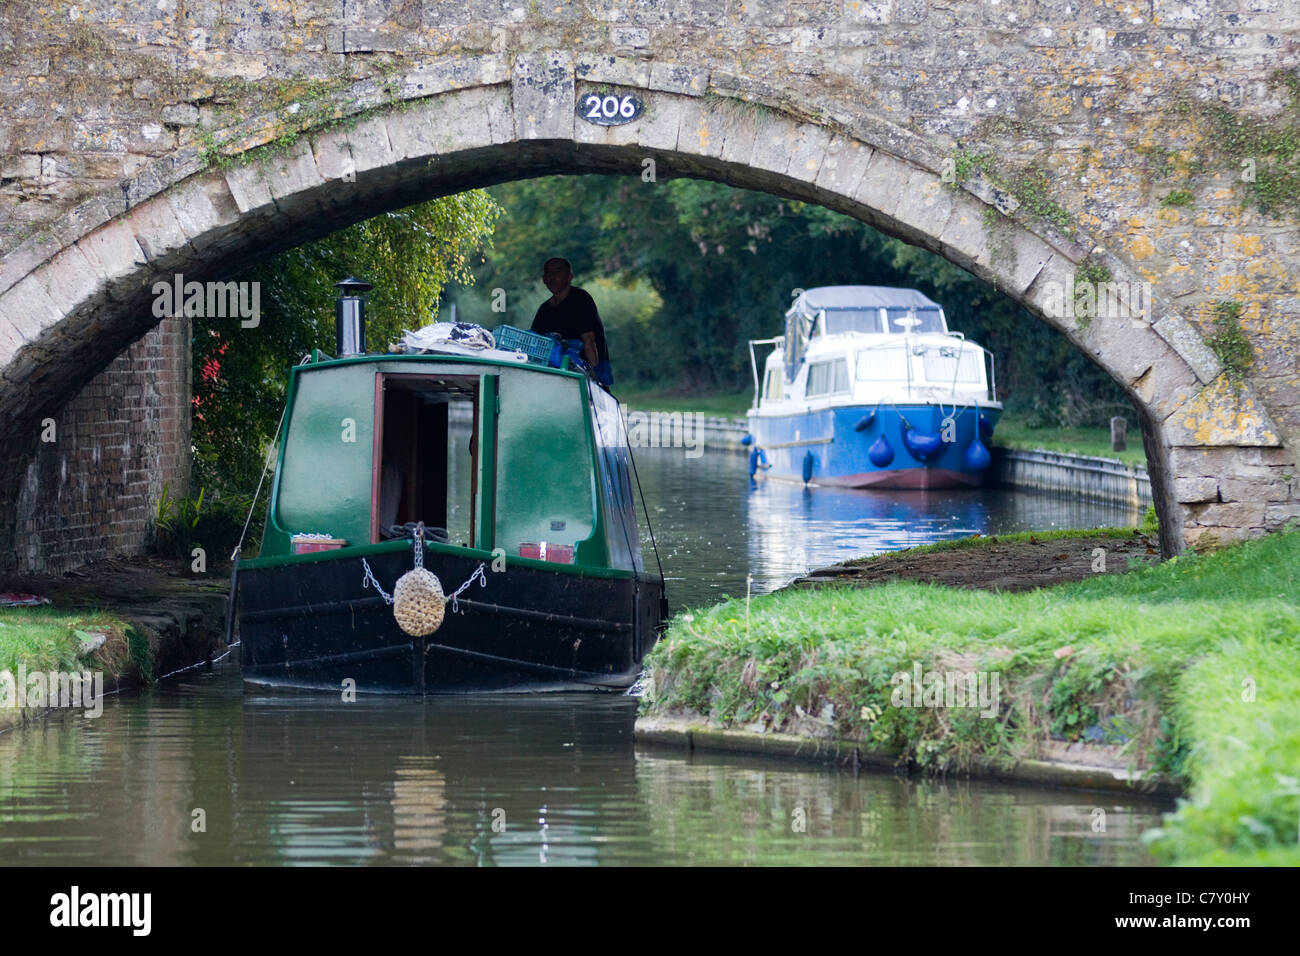 Canal Boats at the Canal day Celebrations in Banbury England - Stock Image